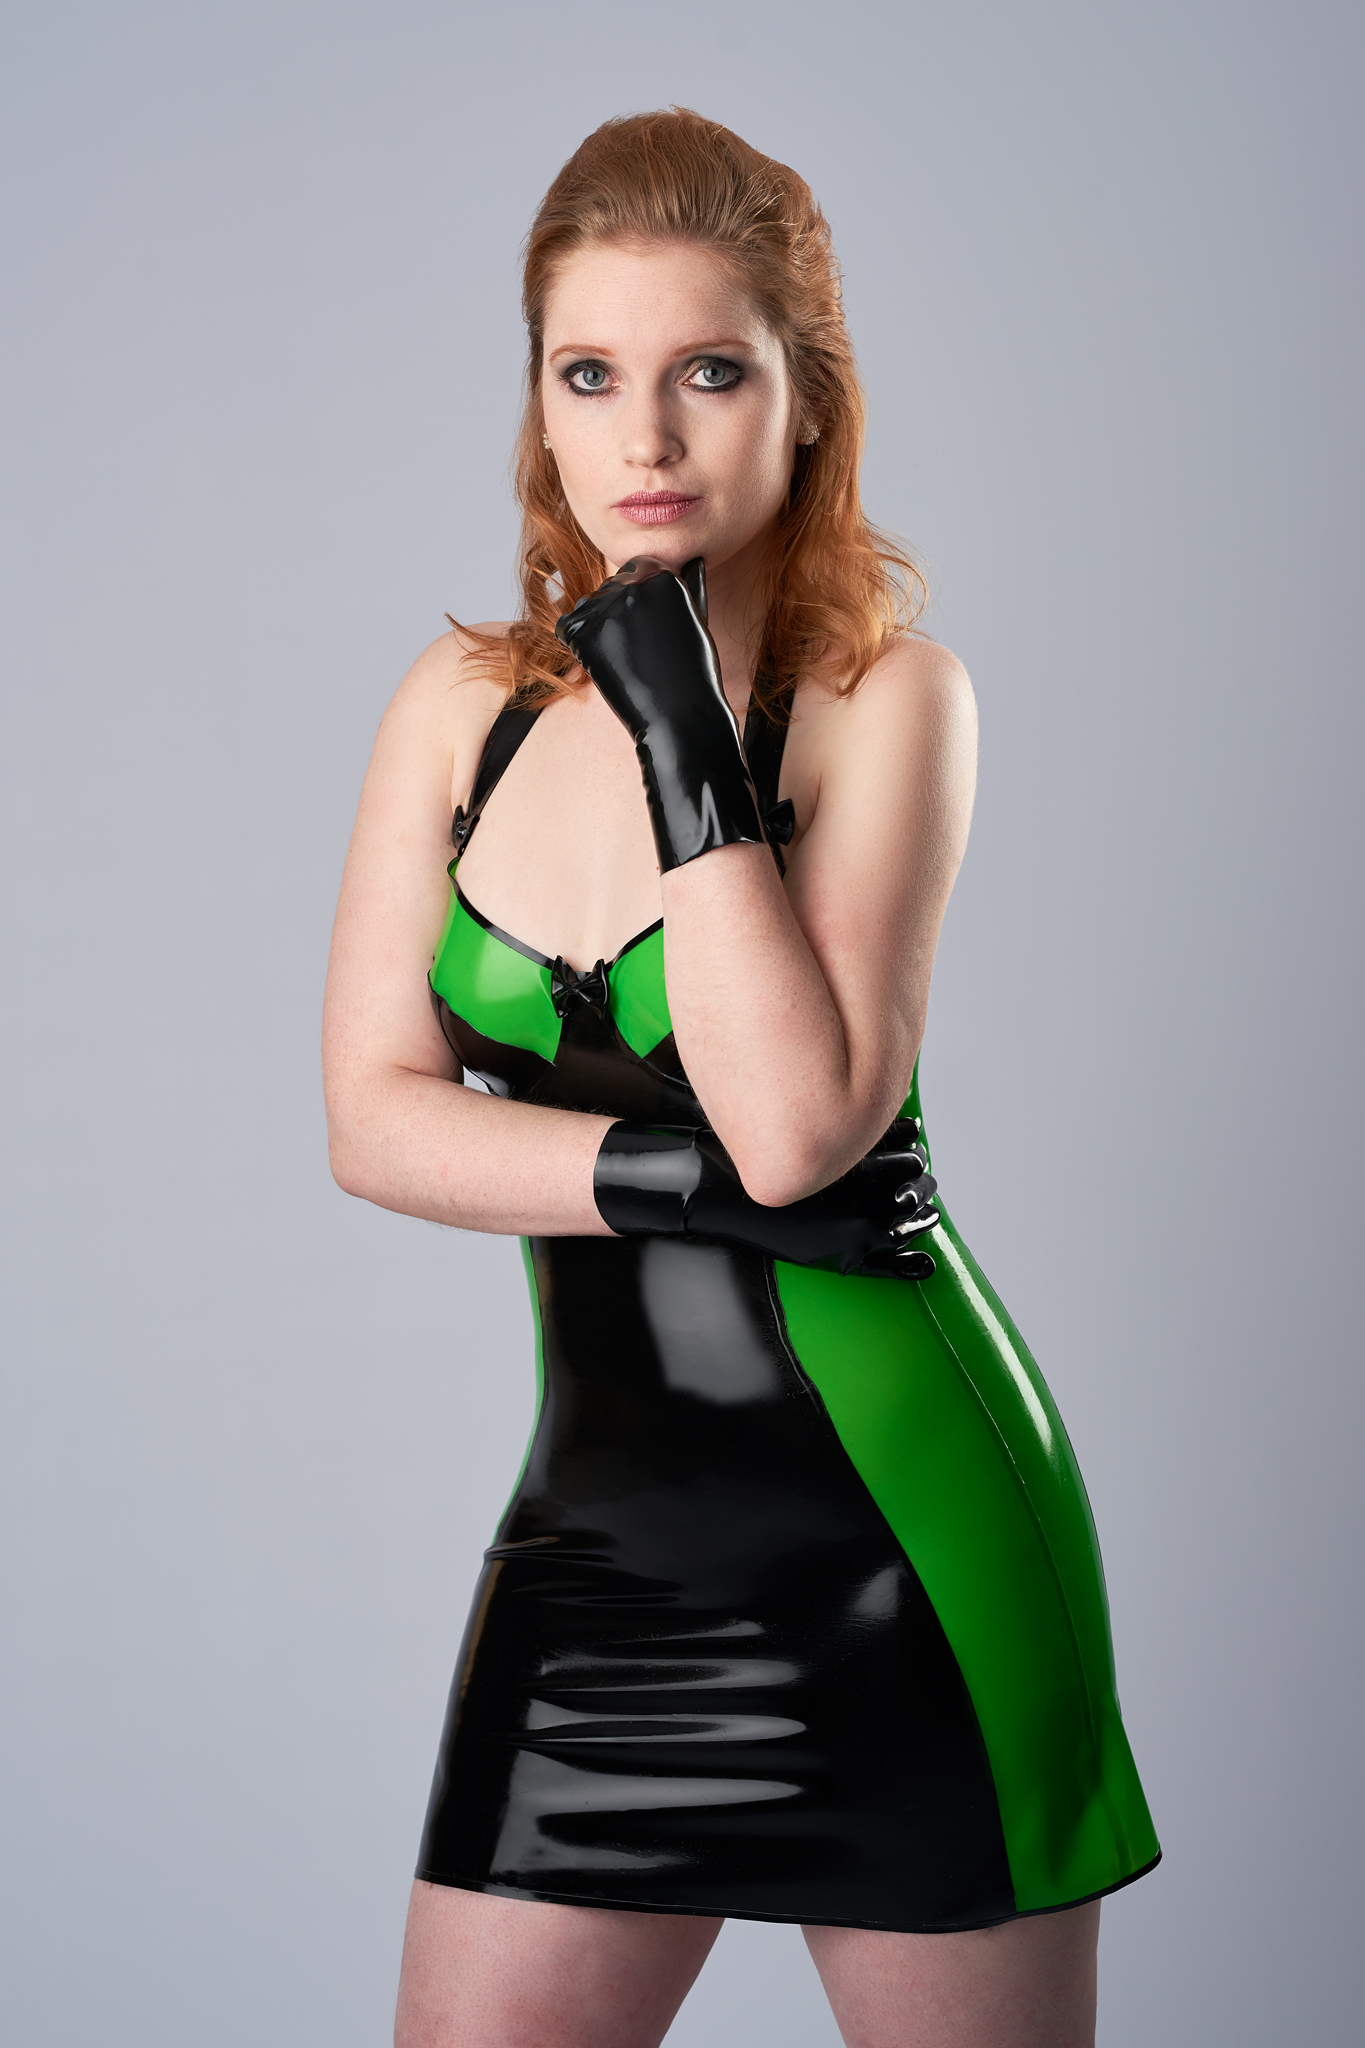 332017_01_21-Latex-Fashion-Odd-Territory-model-Megan-en-Marjolein1159_PSD.jpg